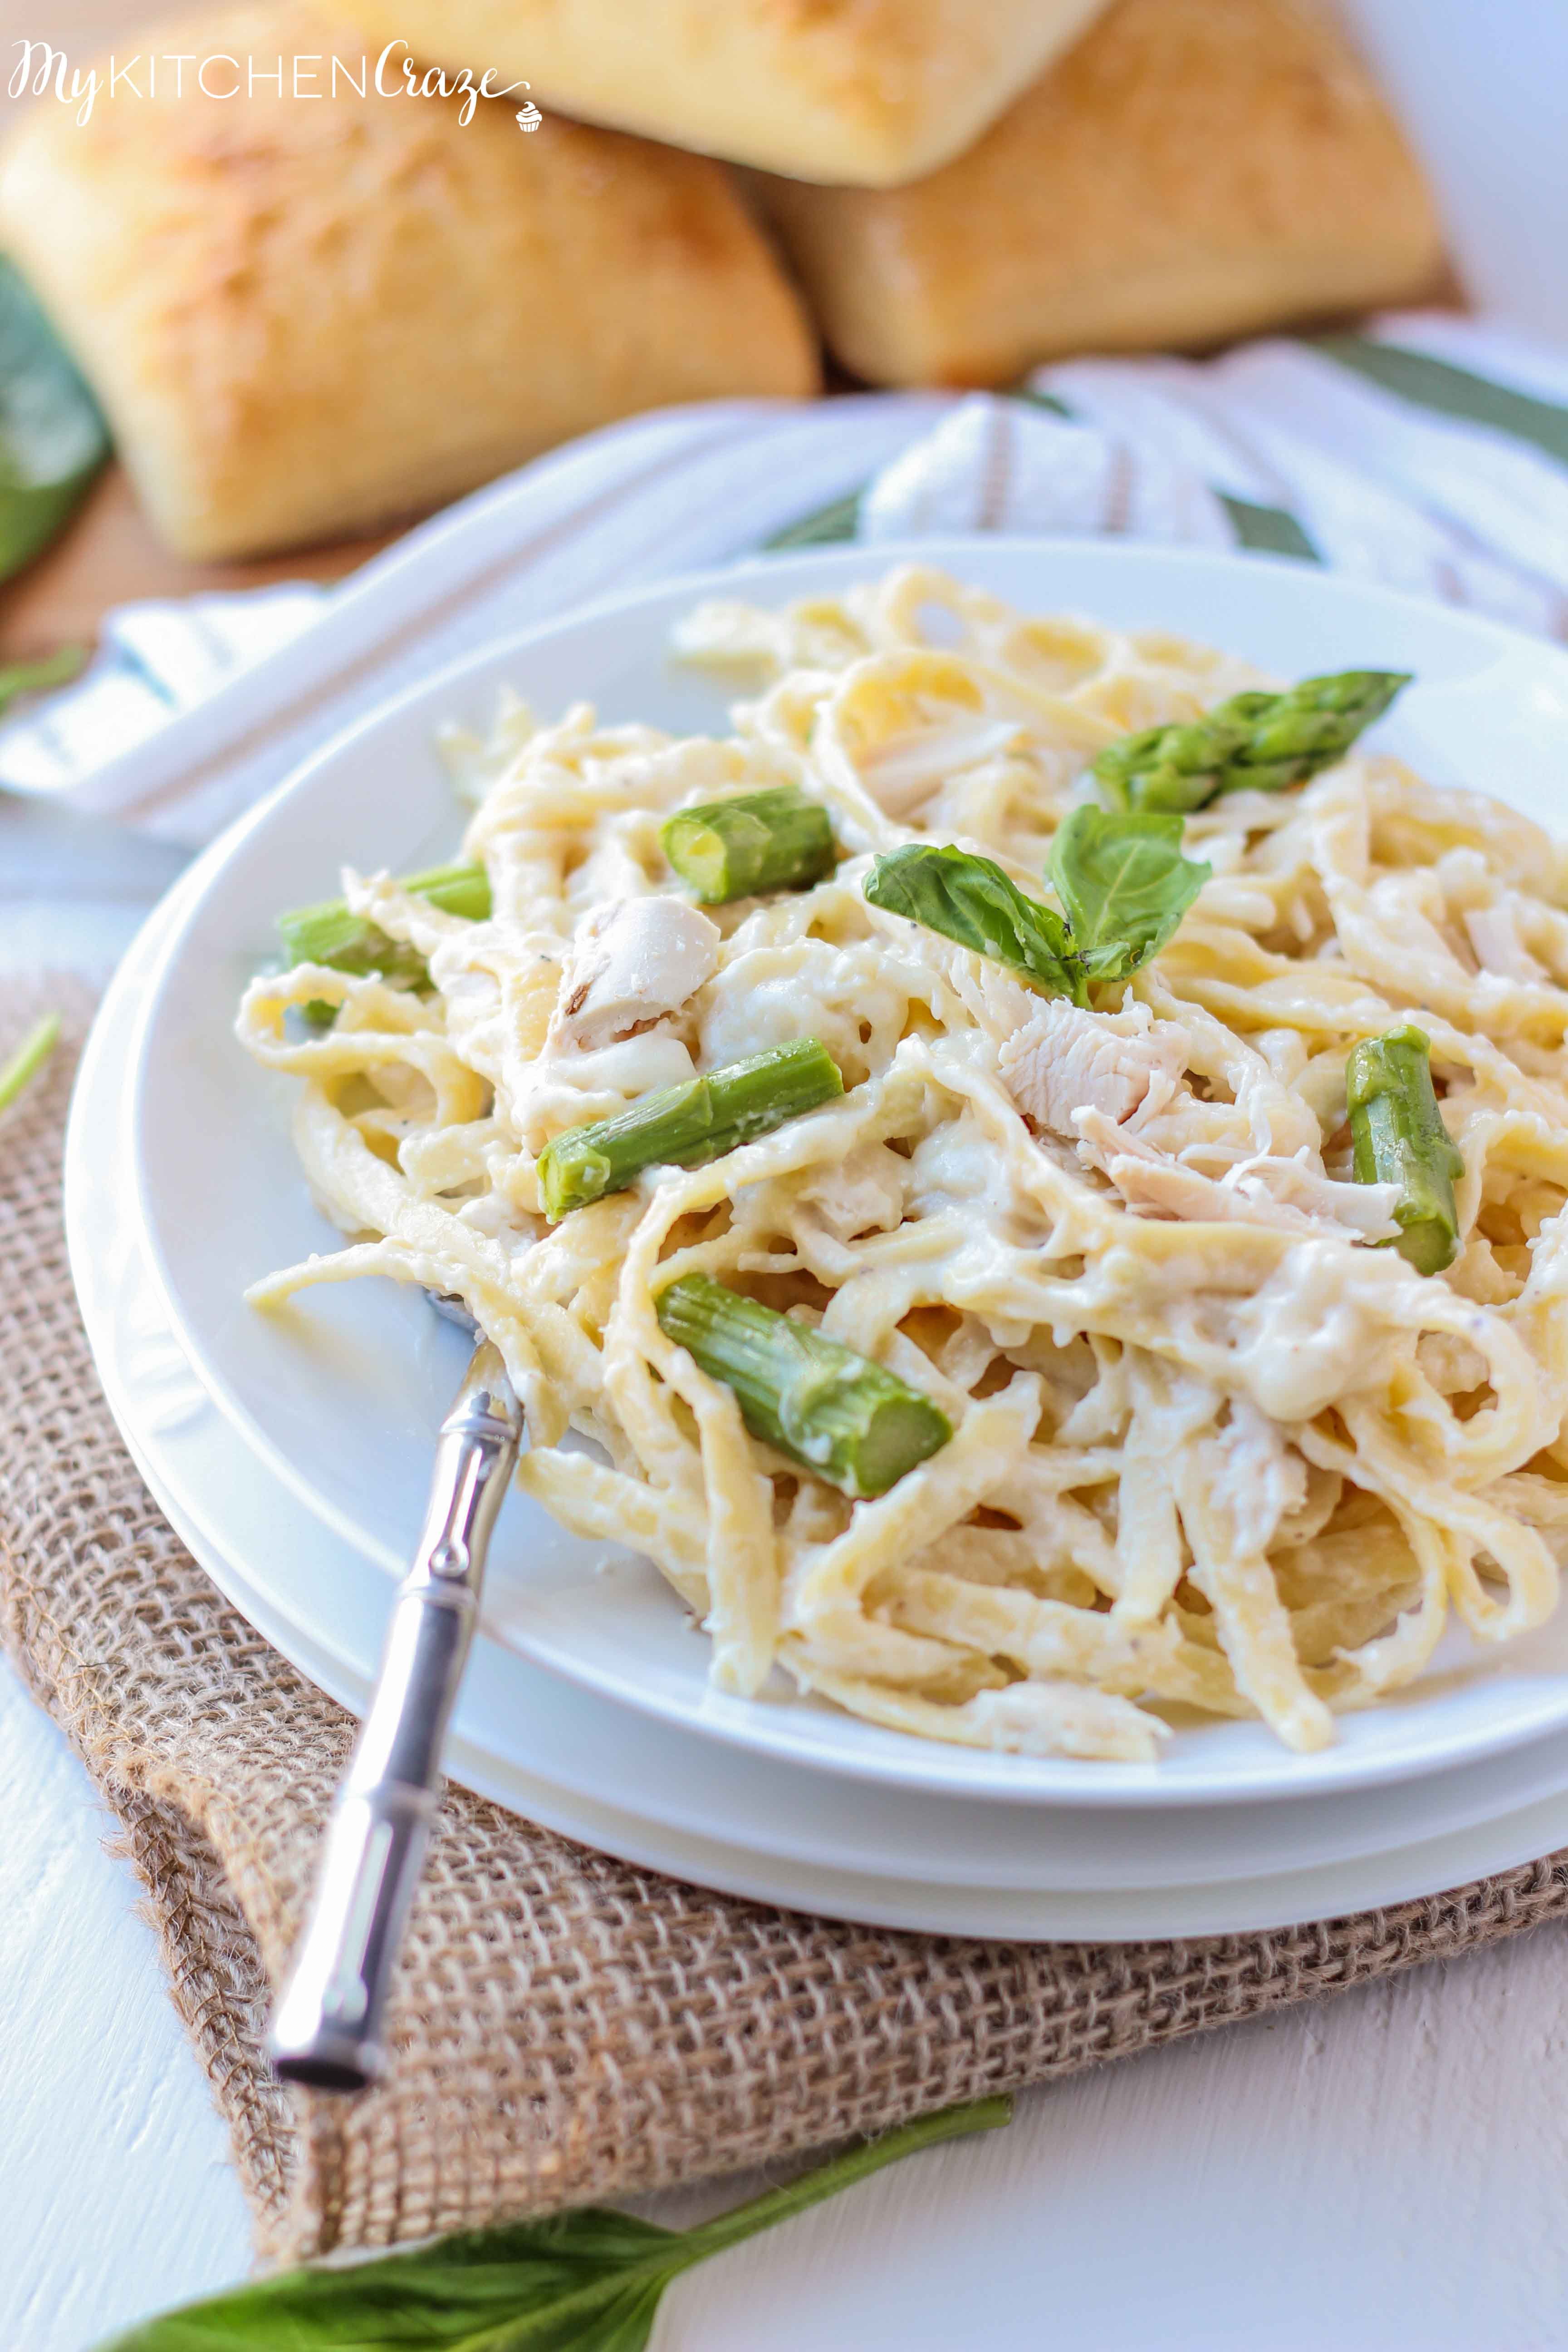 Chicken & Asparagus Fettuccine Alfredo ~ mykitchencraze.com ~ Enjoy this creamy pasta with in 30 minutes. Perfect for those busy nights!